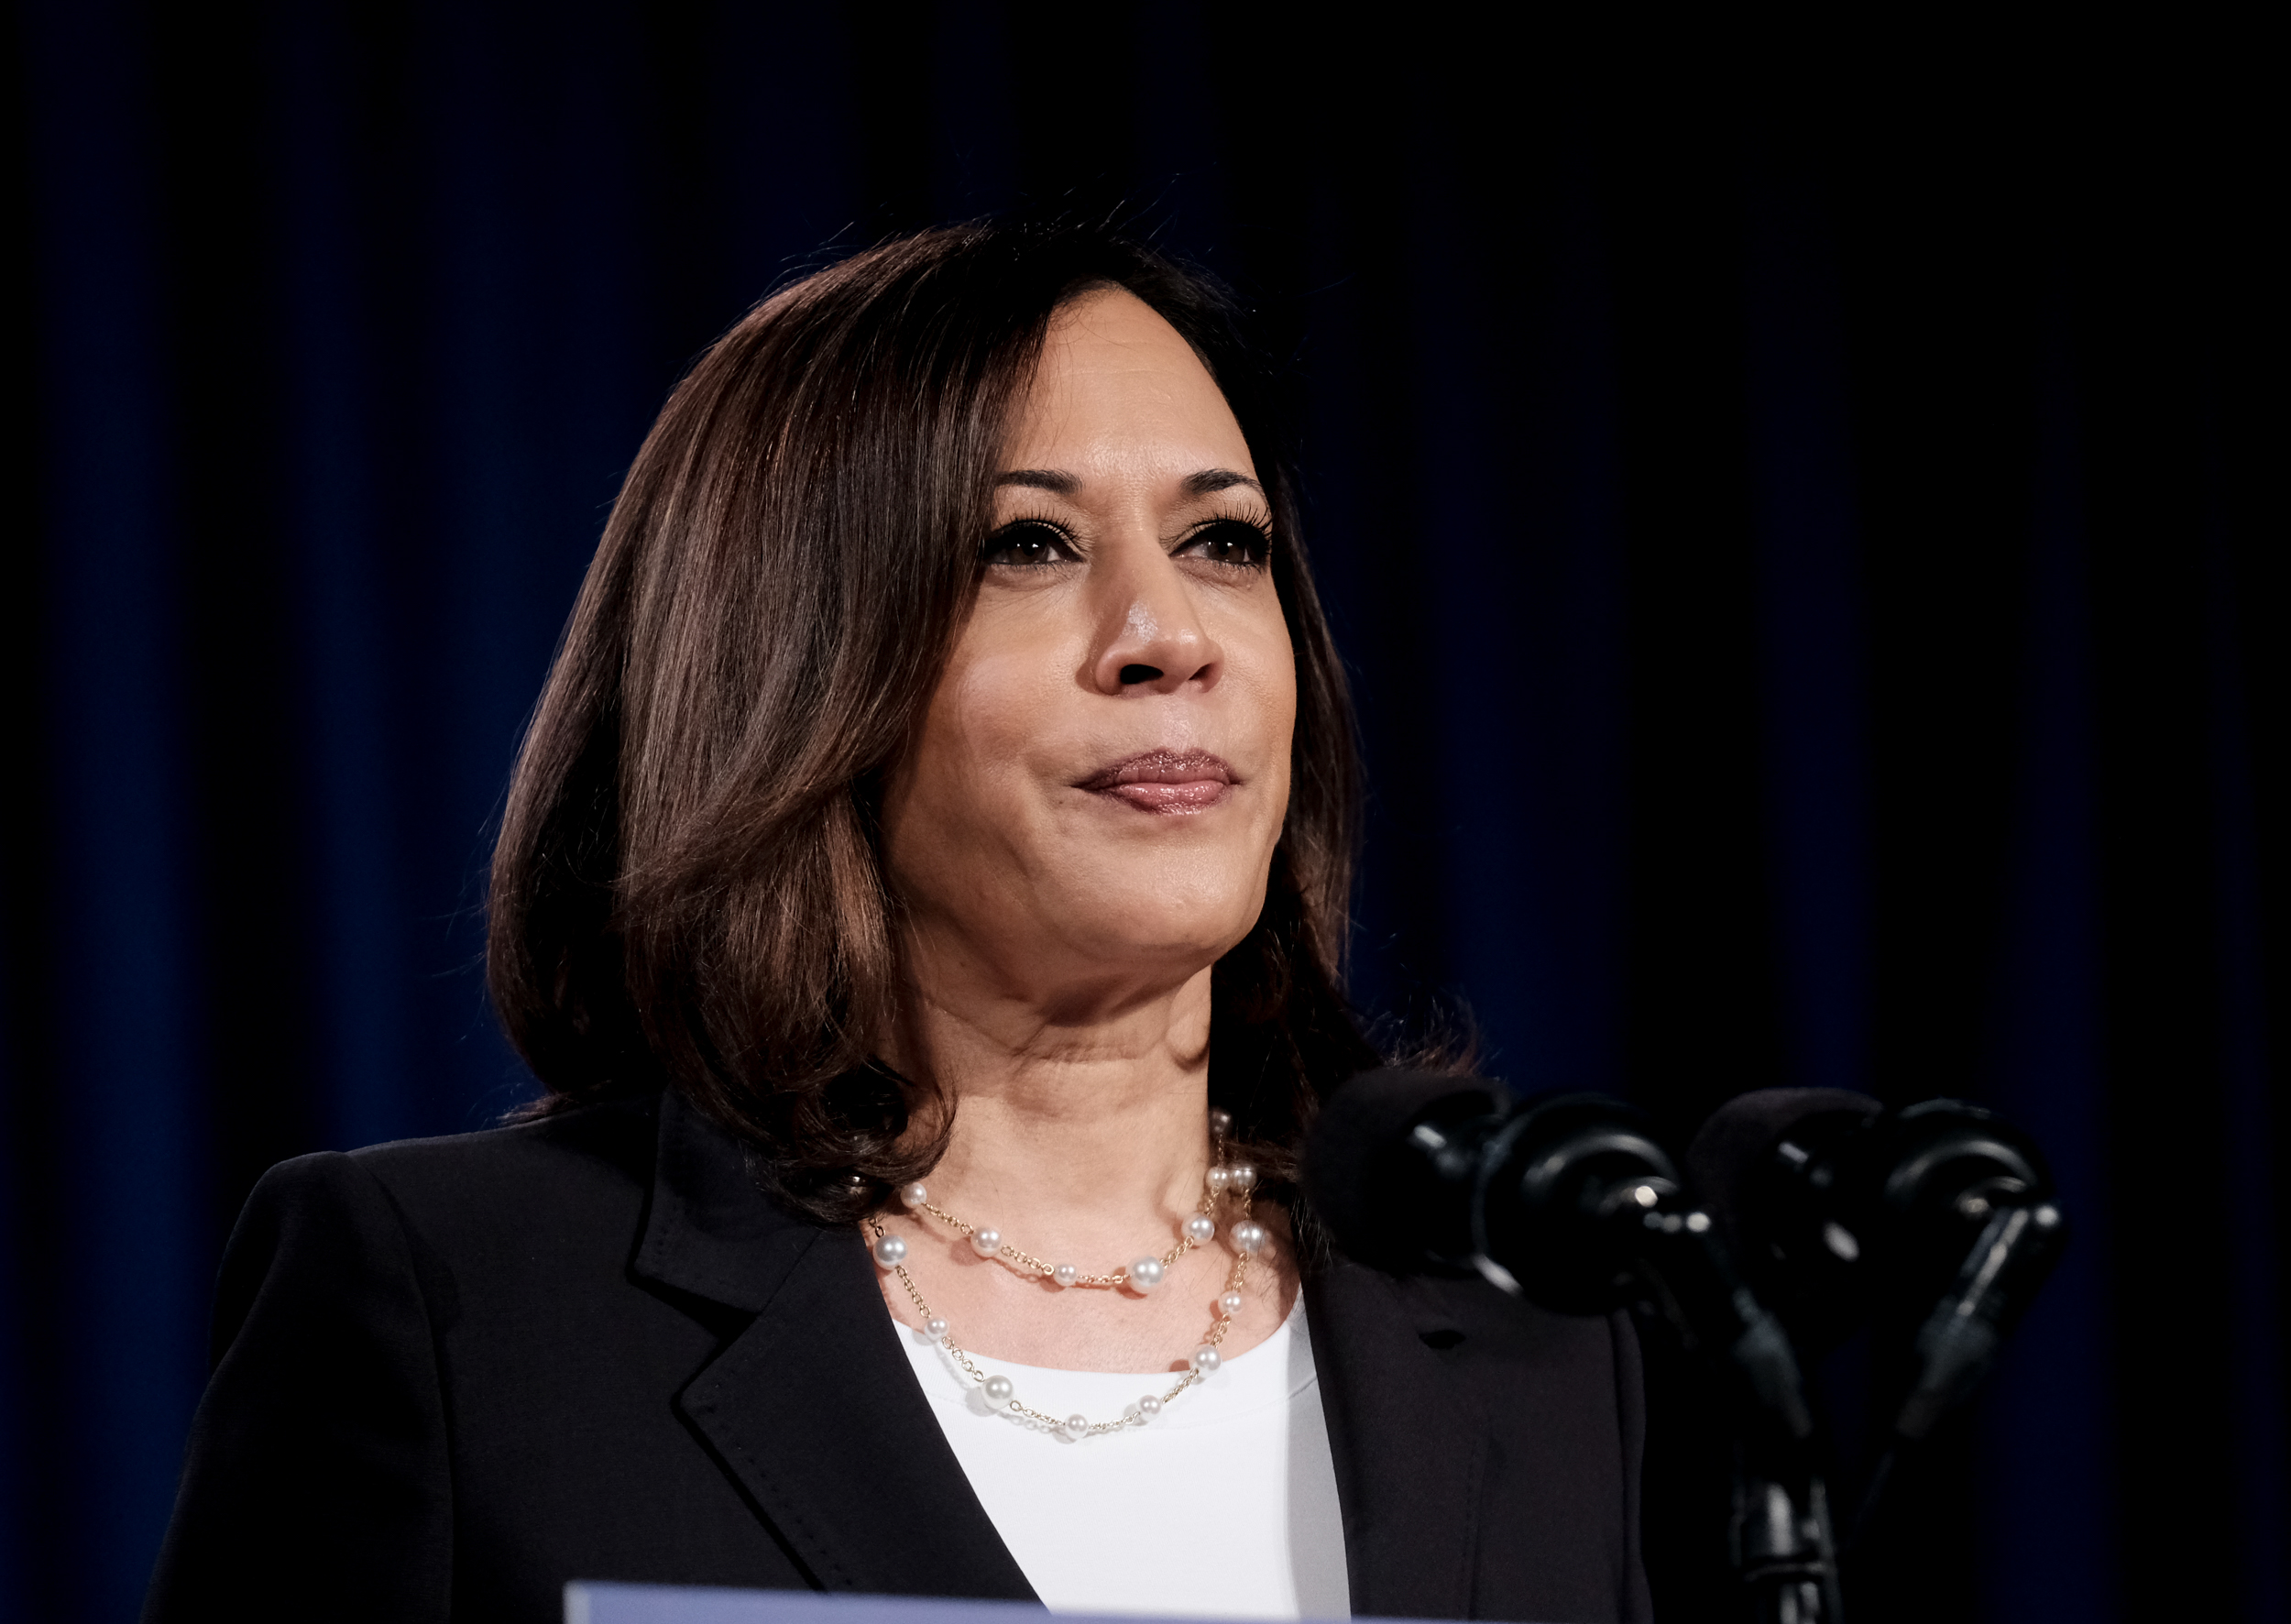 Harris resigns from the Senate ahead of inauguration